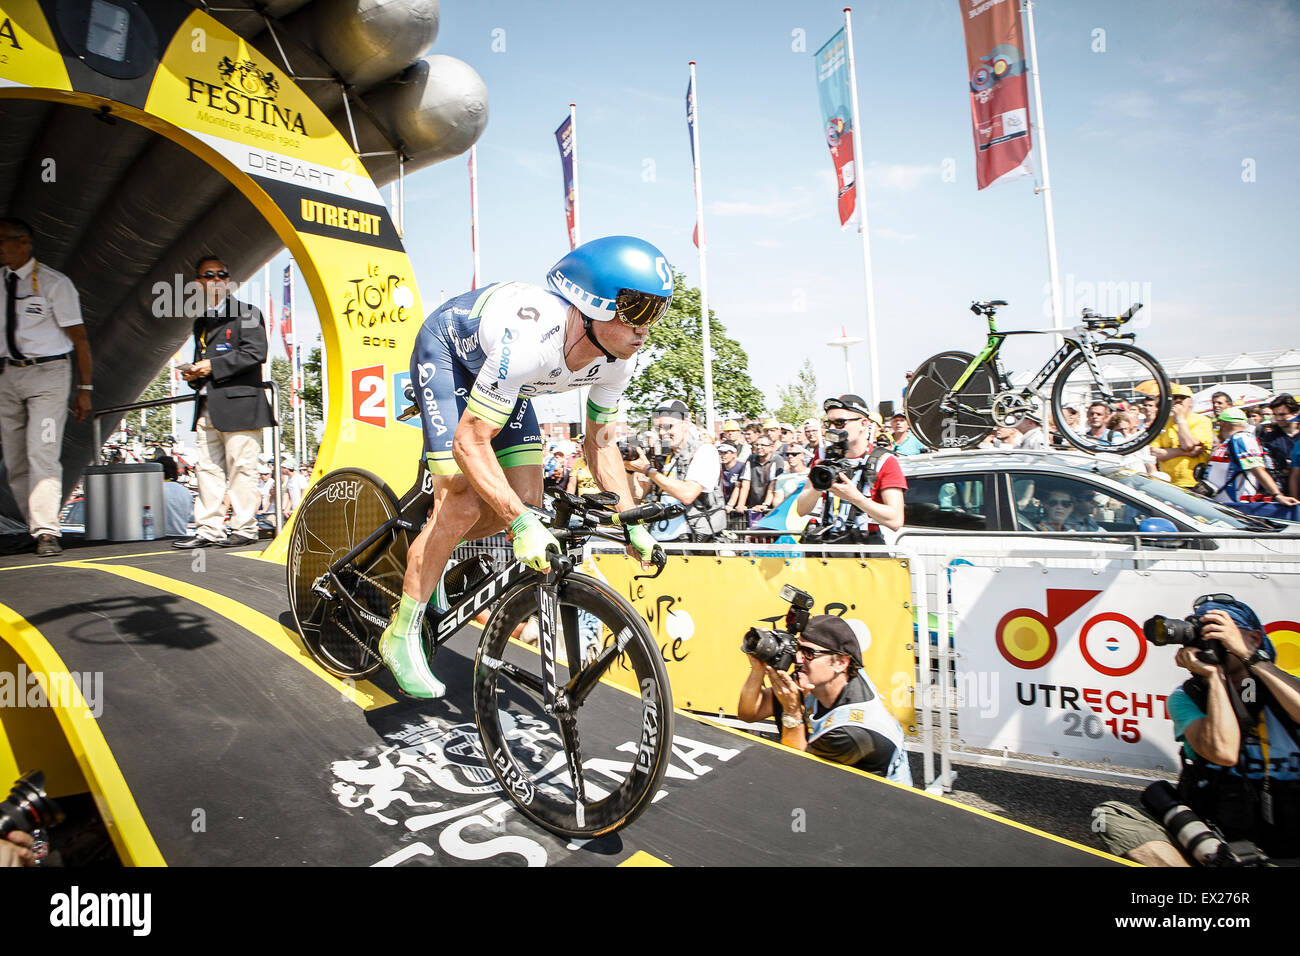 Utrecht, Niederlande. 4. Juli 2015. Tour de France Time Trial Phase, SIMON GERRANS, Team Orica Green EDGE Credit: Stockbild